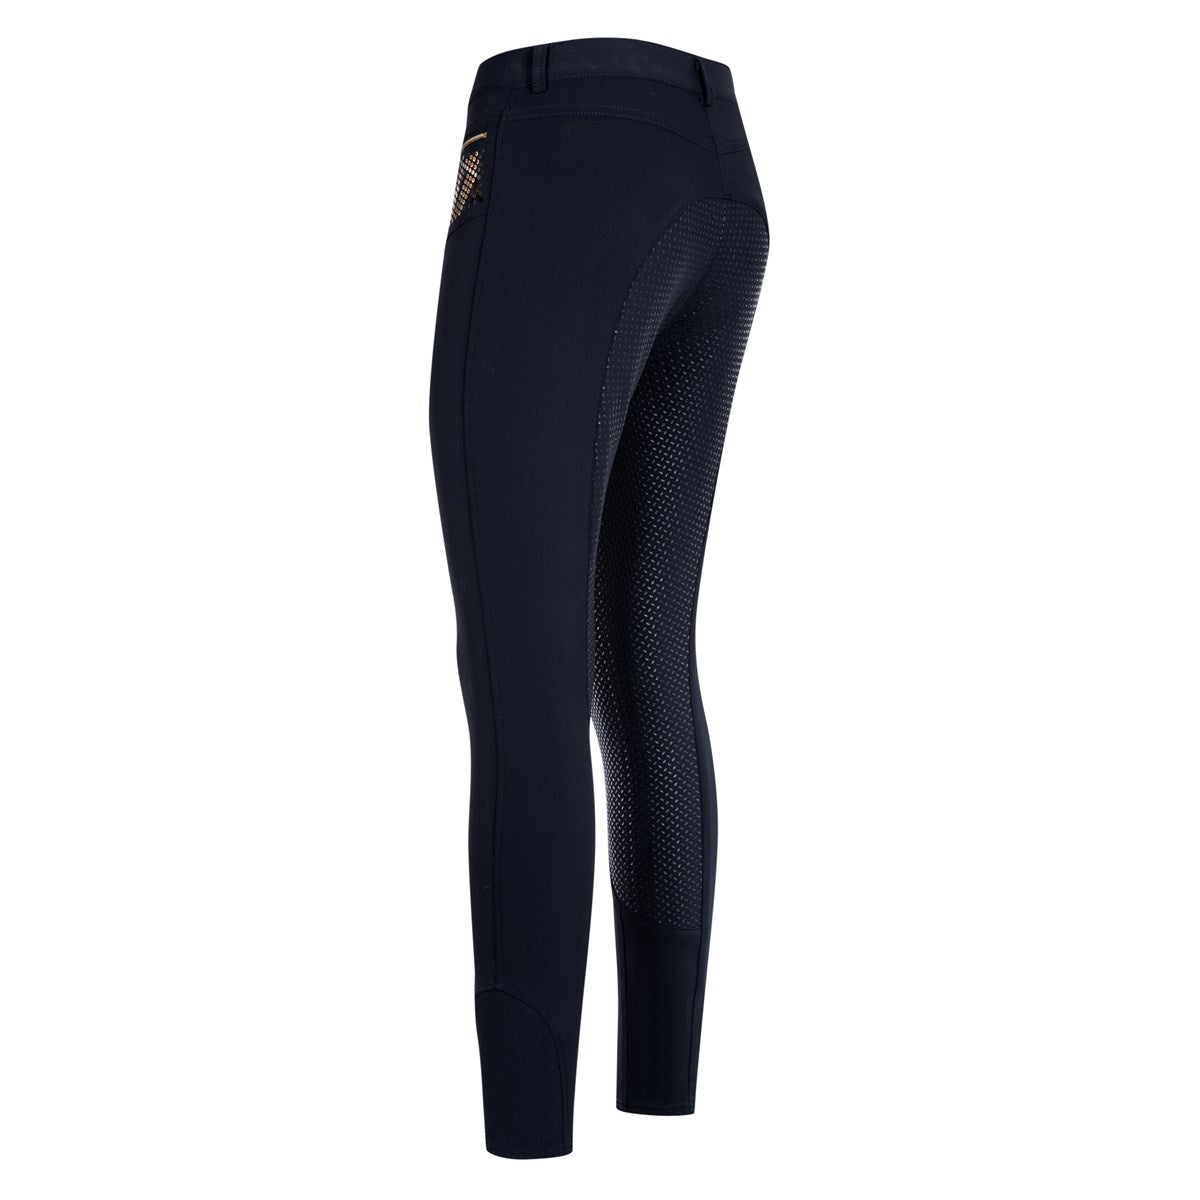 Euro-Star Coco Glam FullGrip Breeches